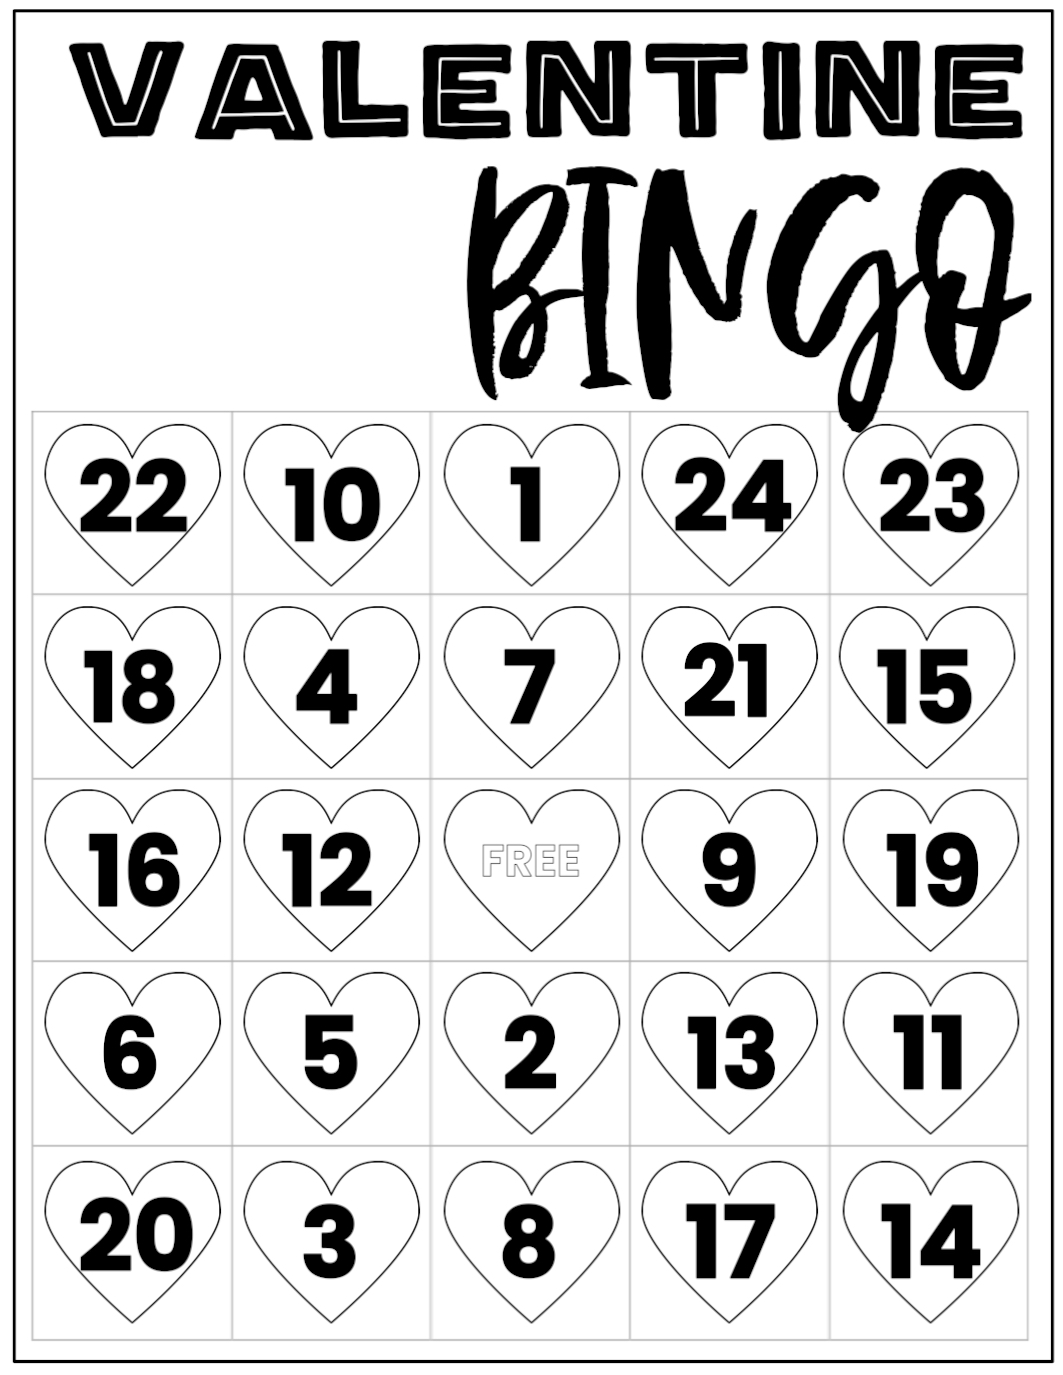 image about Printable Valentine Bingo Cards identified as Free of charge Valentine Bingo Printable Playing cards - Paper Path Design and style